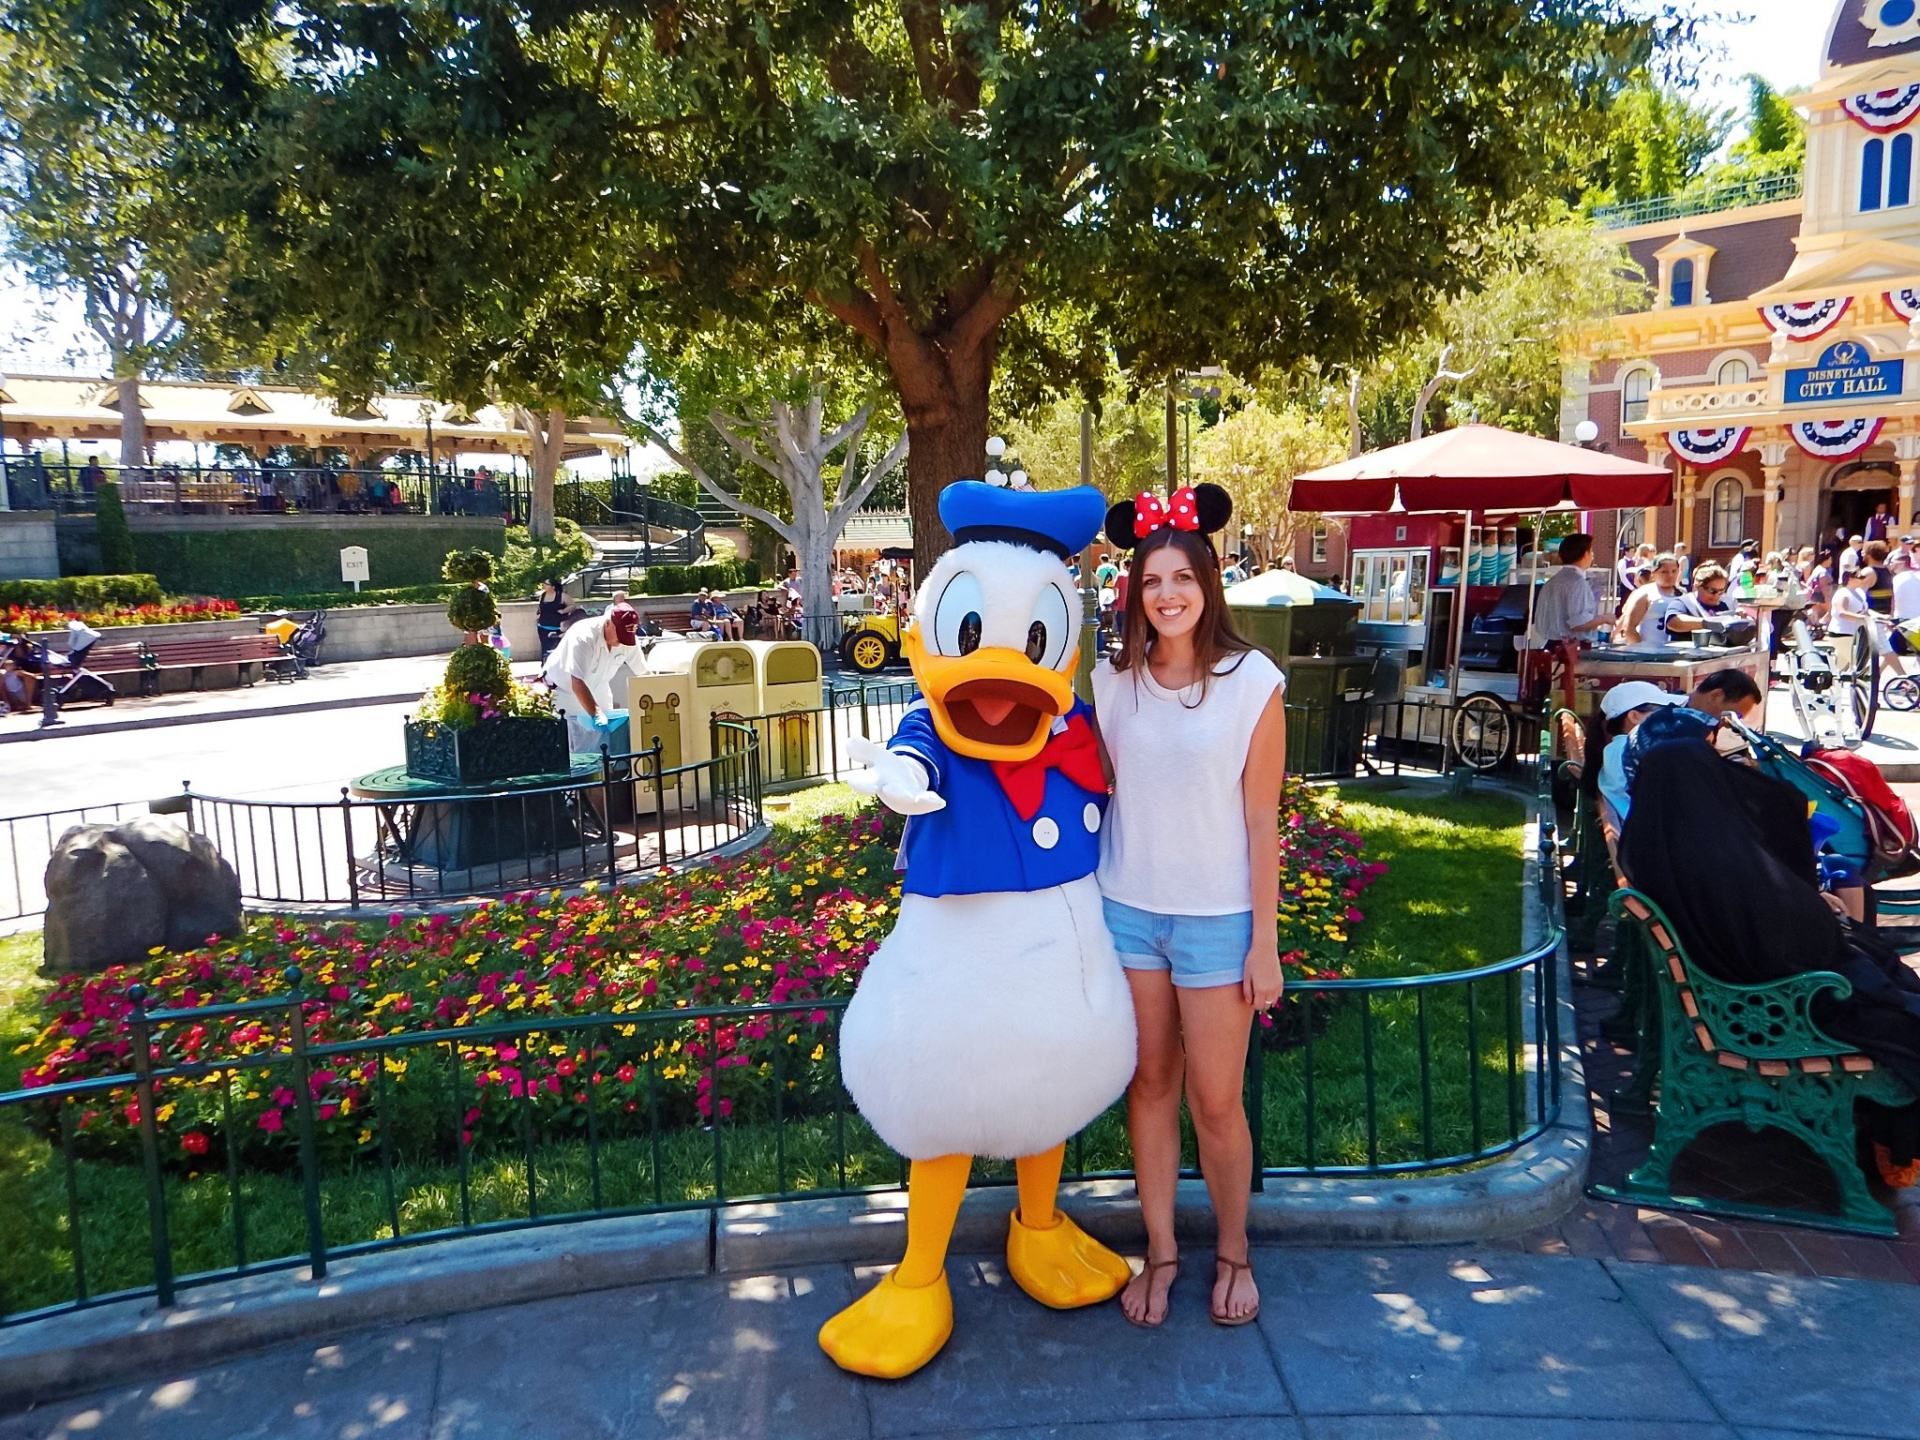 donald duck at disneyland